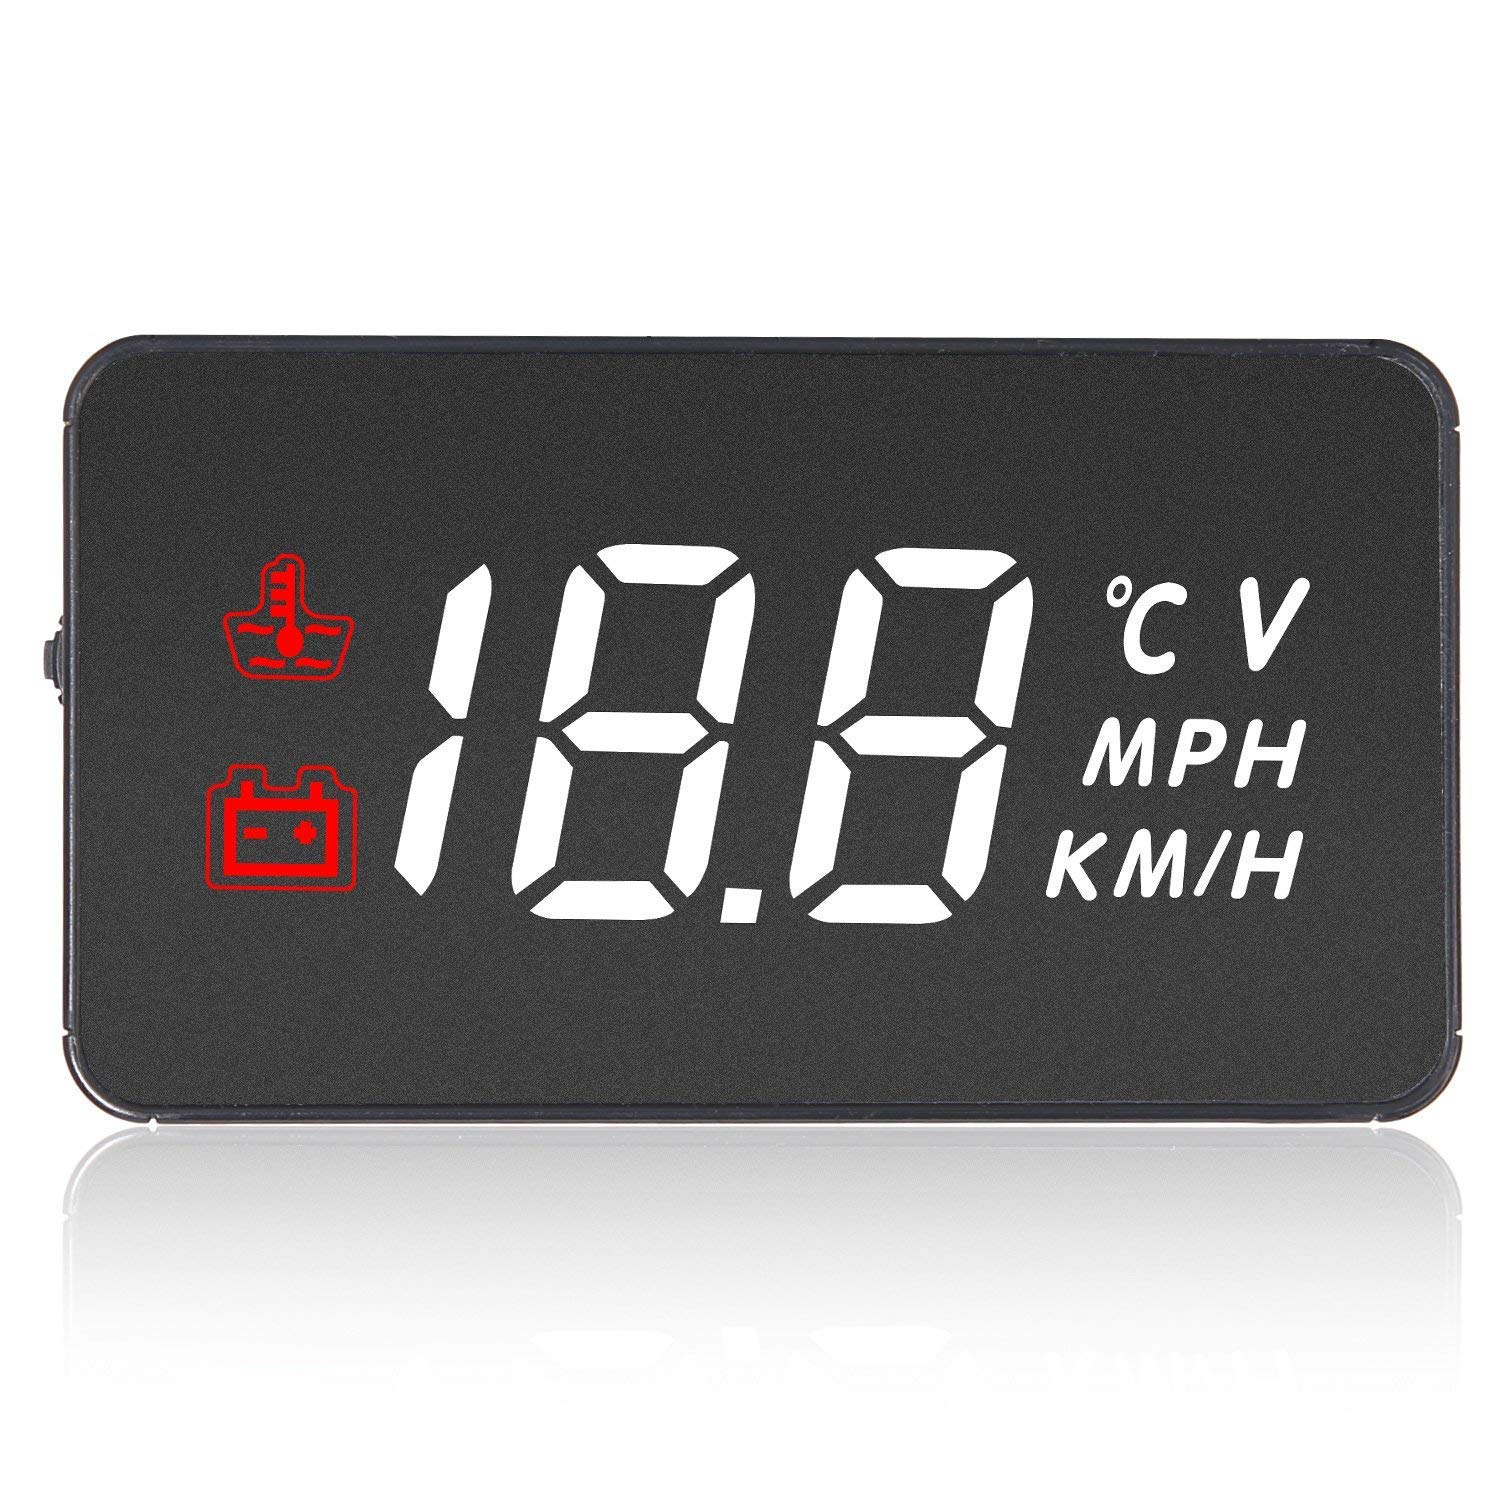 Car Head Up Display HUD LED Windshield Screen Projector Speedometer Overspeed Warning System with OBD Cable Beepzoo